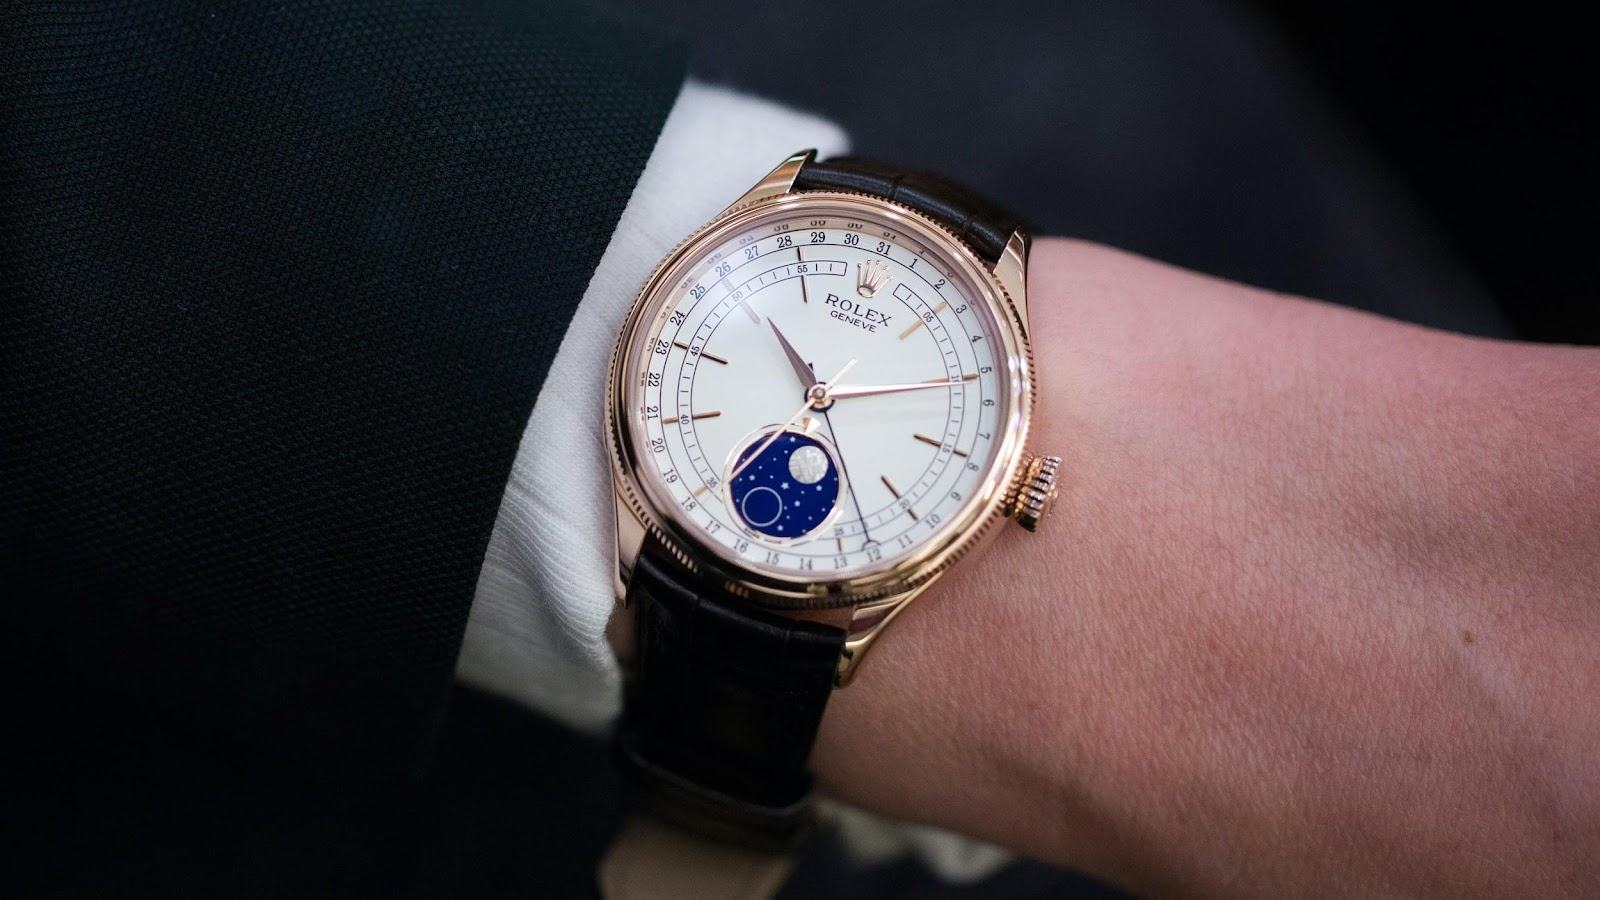 Introducing: The Rolex Cellini Moonphase (Live Pics & Pricing) - HODINKEE